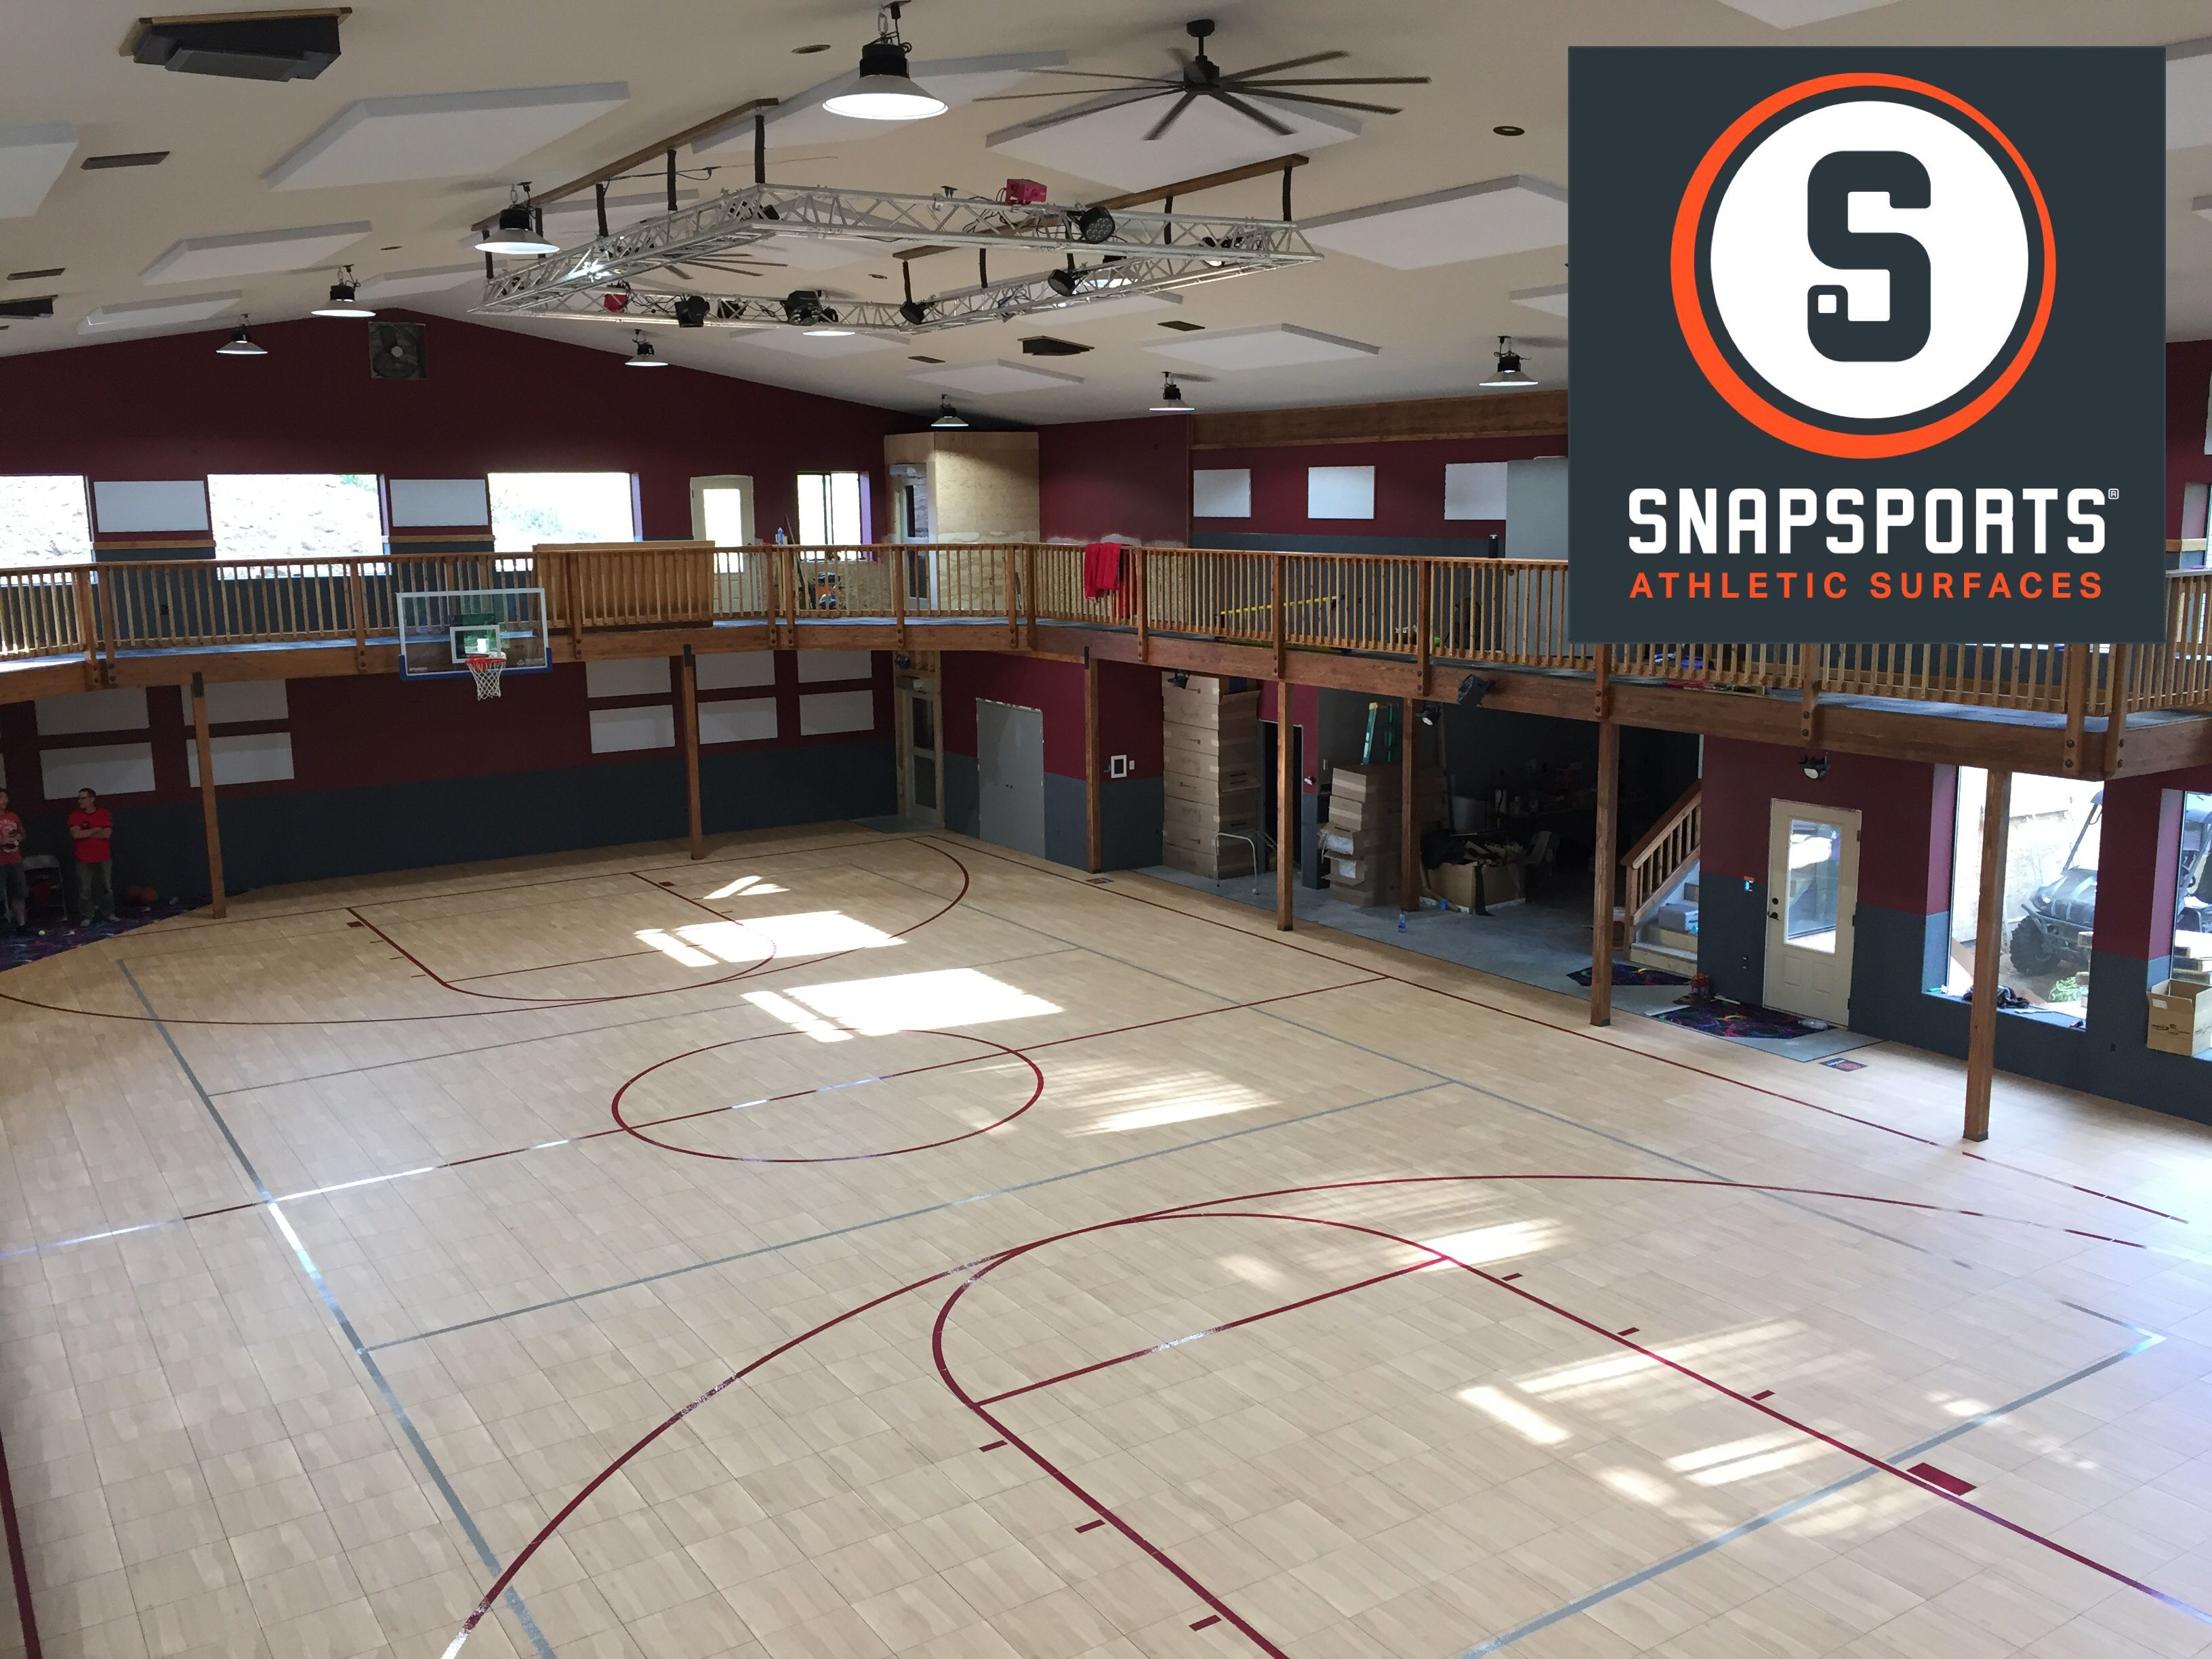 Luxury Residential Home Gym And Basketball Court By Snapsports Montana